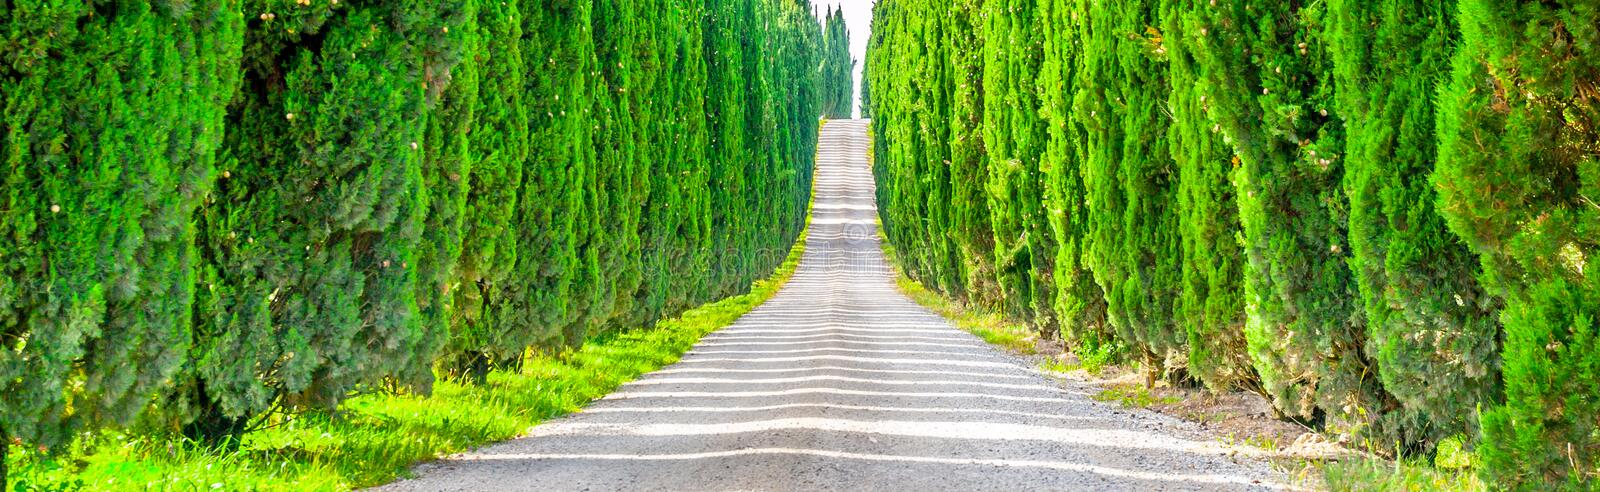 Cypress alley with rural country road, Tuscany, Italy. Panoramic view. Cypress alley with rural country road, Tuscany, Italy. Panoramic view royalty free stock images